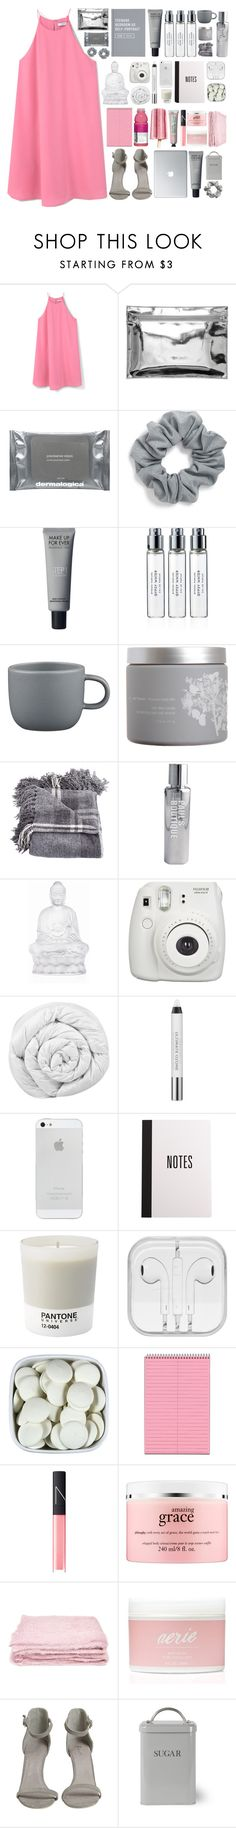 """""""give it up for the kids, eating good, getting lit"""" by magcongirl6154 ❤ liked on Polyvore featuring MANGO, Monki, Dermalogica, Natasha Couture, Byredo, CB2, red flower, Paul's Boutique, Lalique and Fujifilm"""